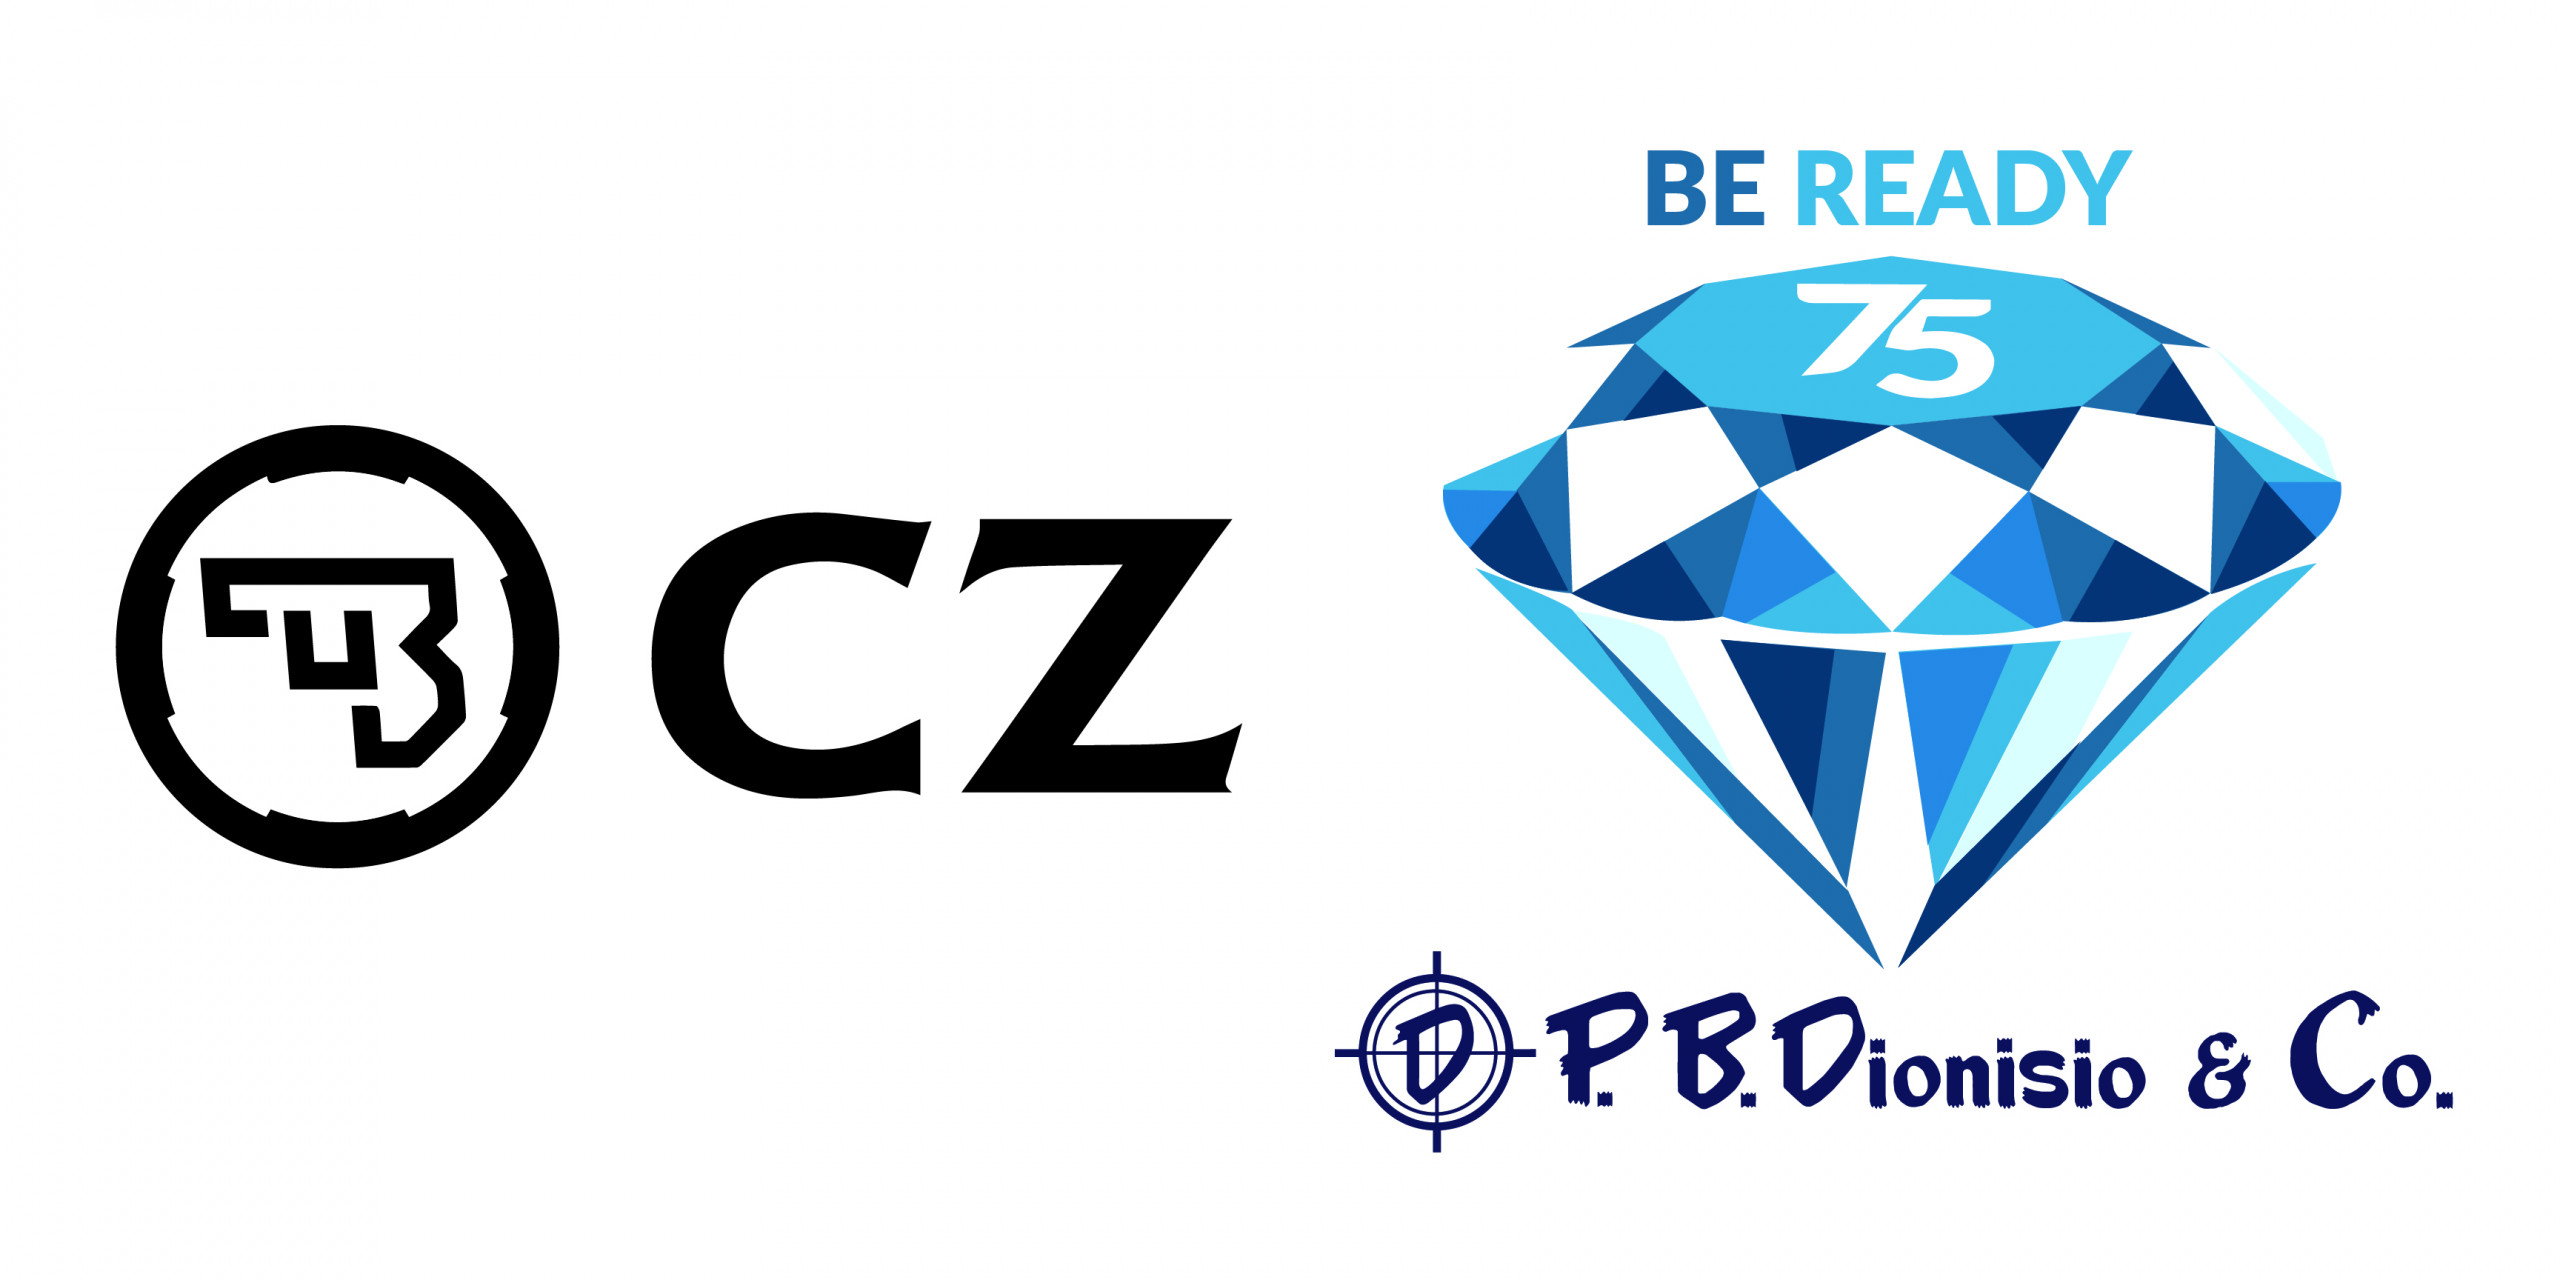 Be ready to compete with CZ at P.B.Dionisio & Co.